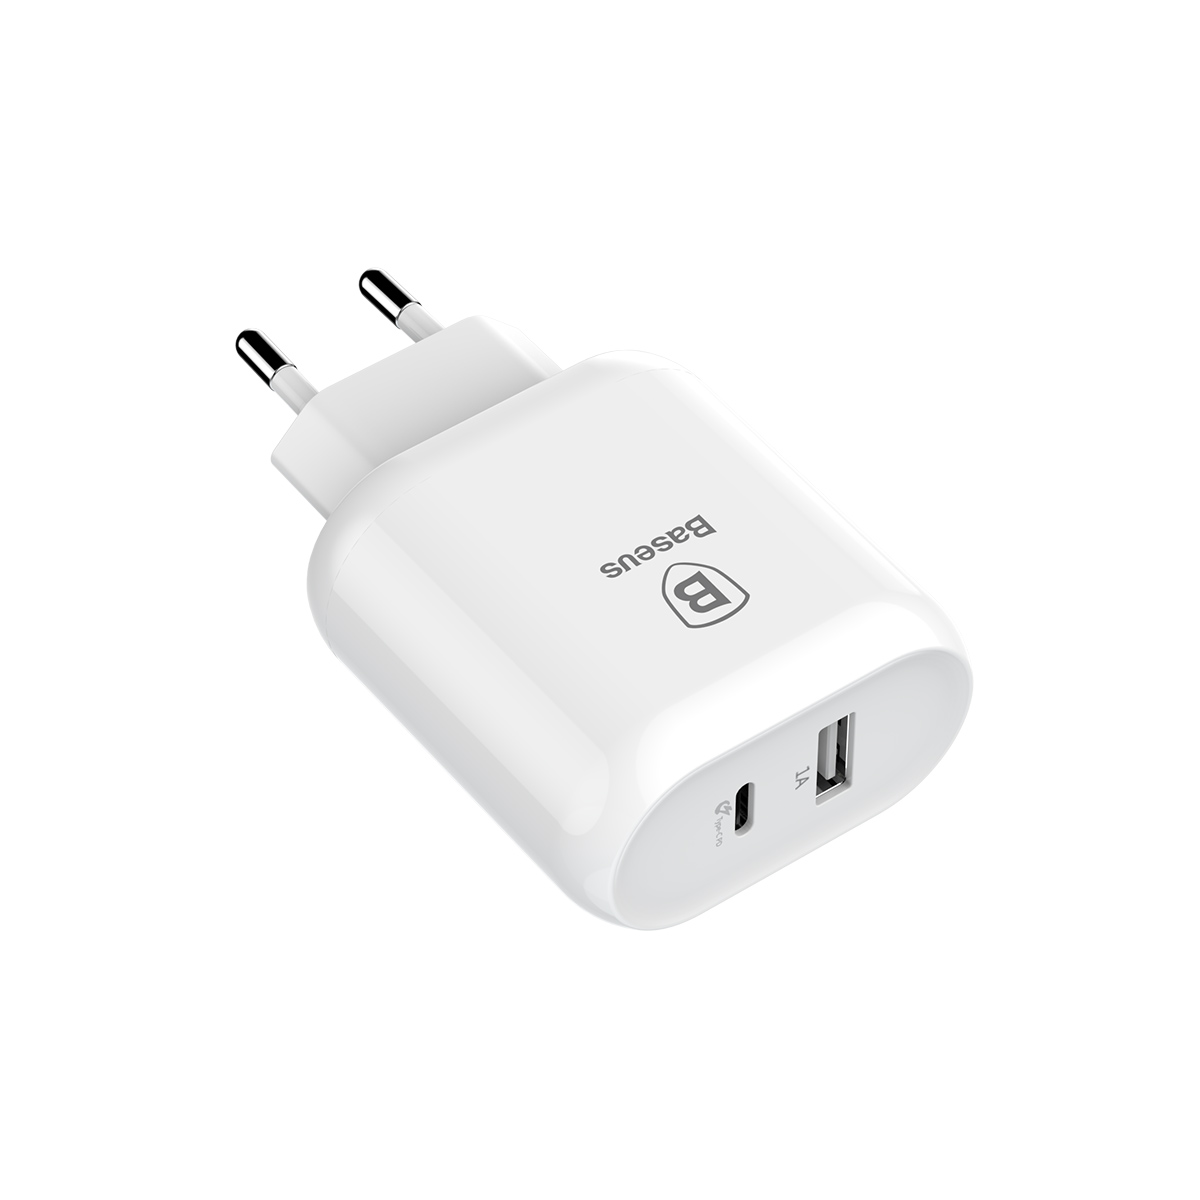 Сетевое зарядное устройство Baseus Bojure SeriesType-C PD+U quick charge charger EU 32W set White